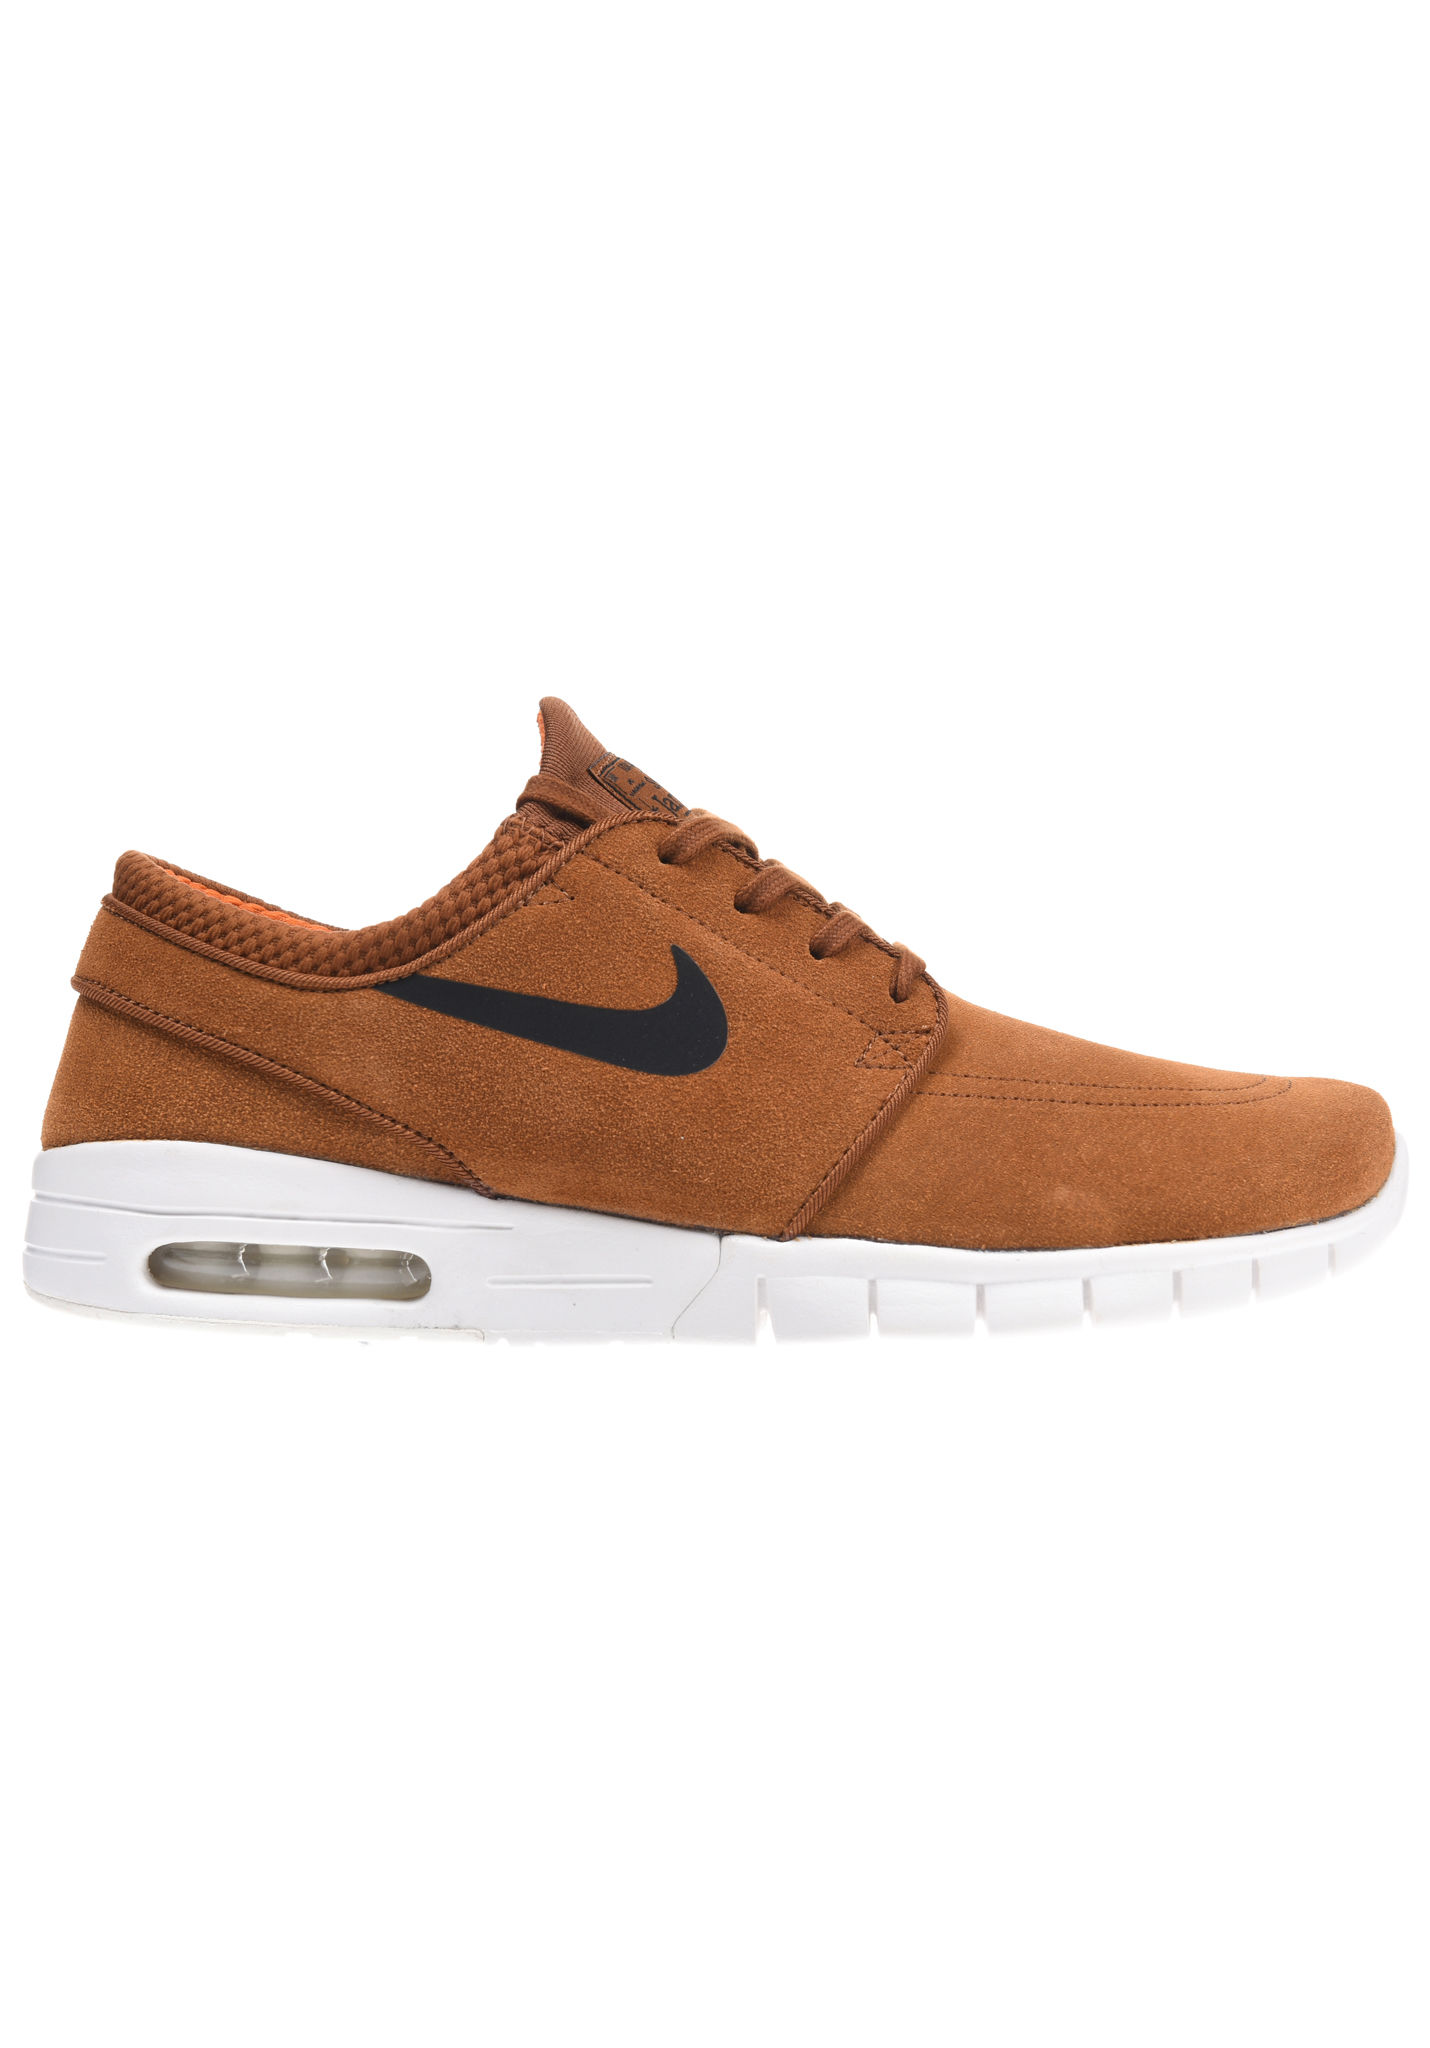 nike sb stefan janoski marrones